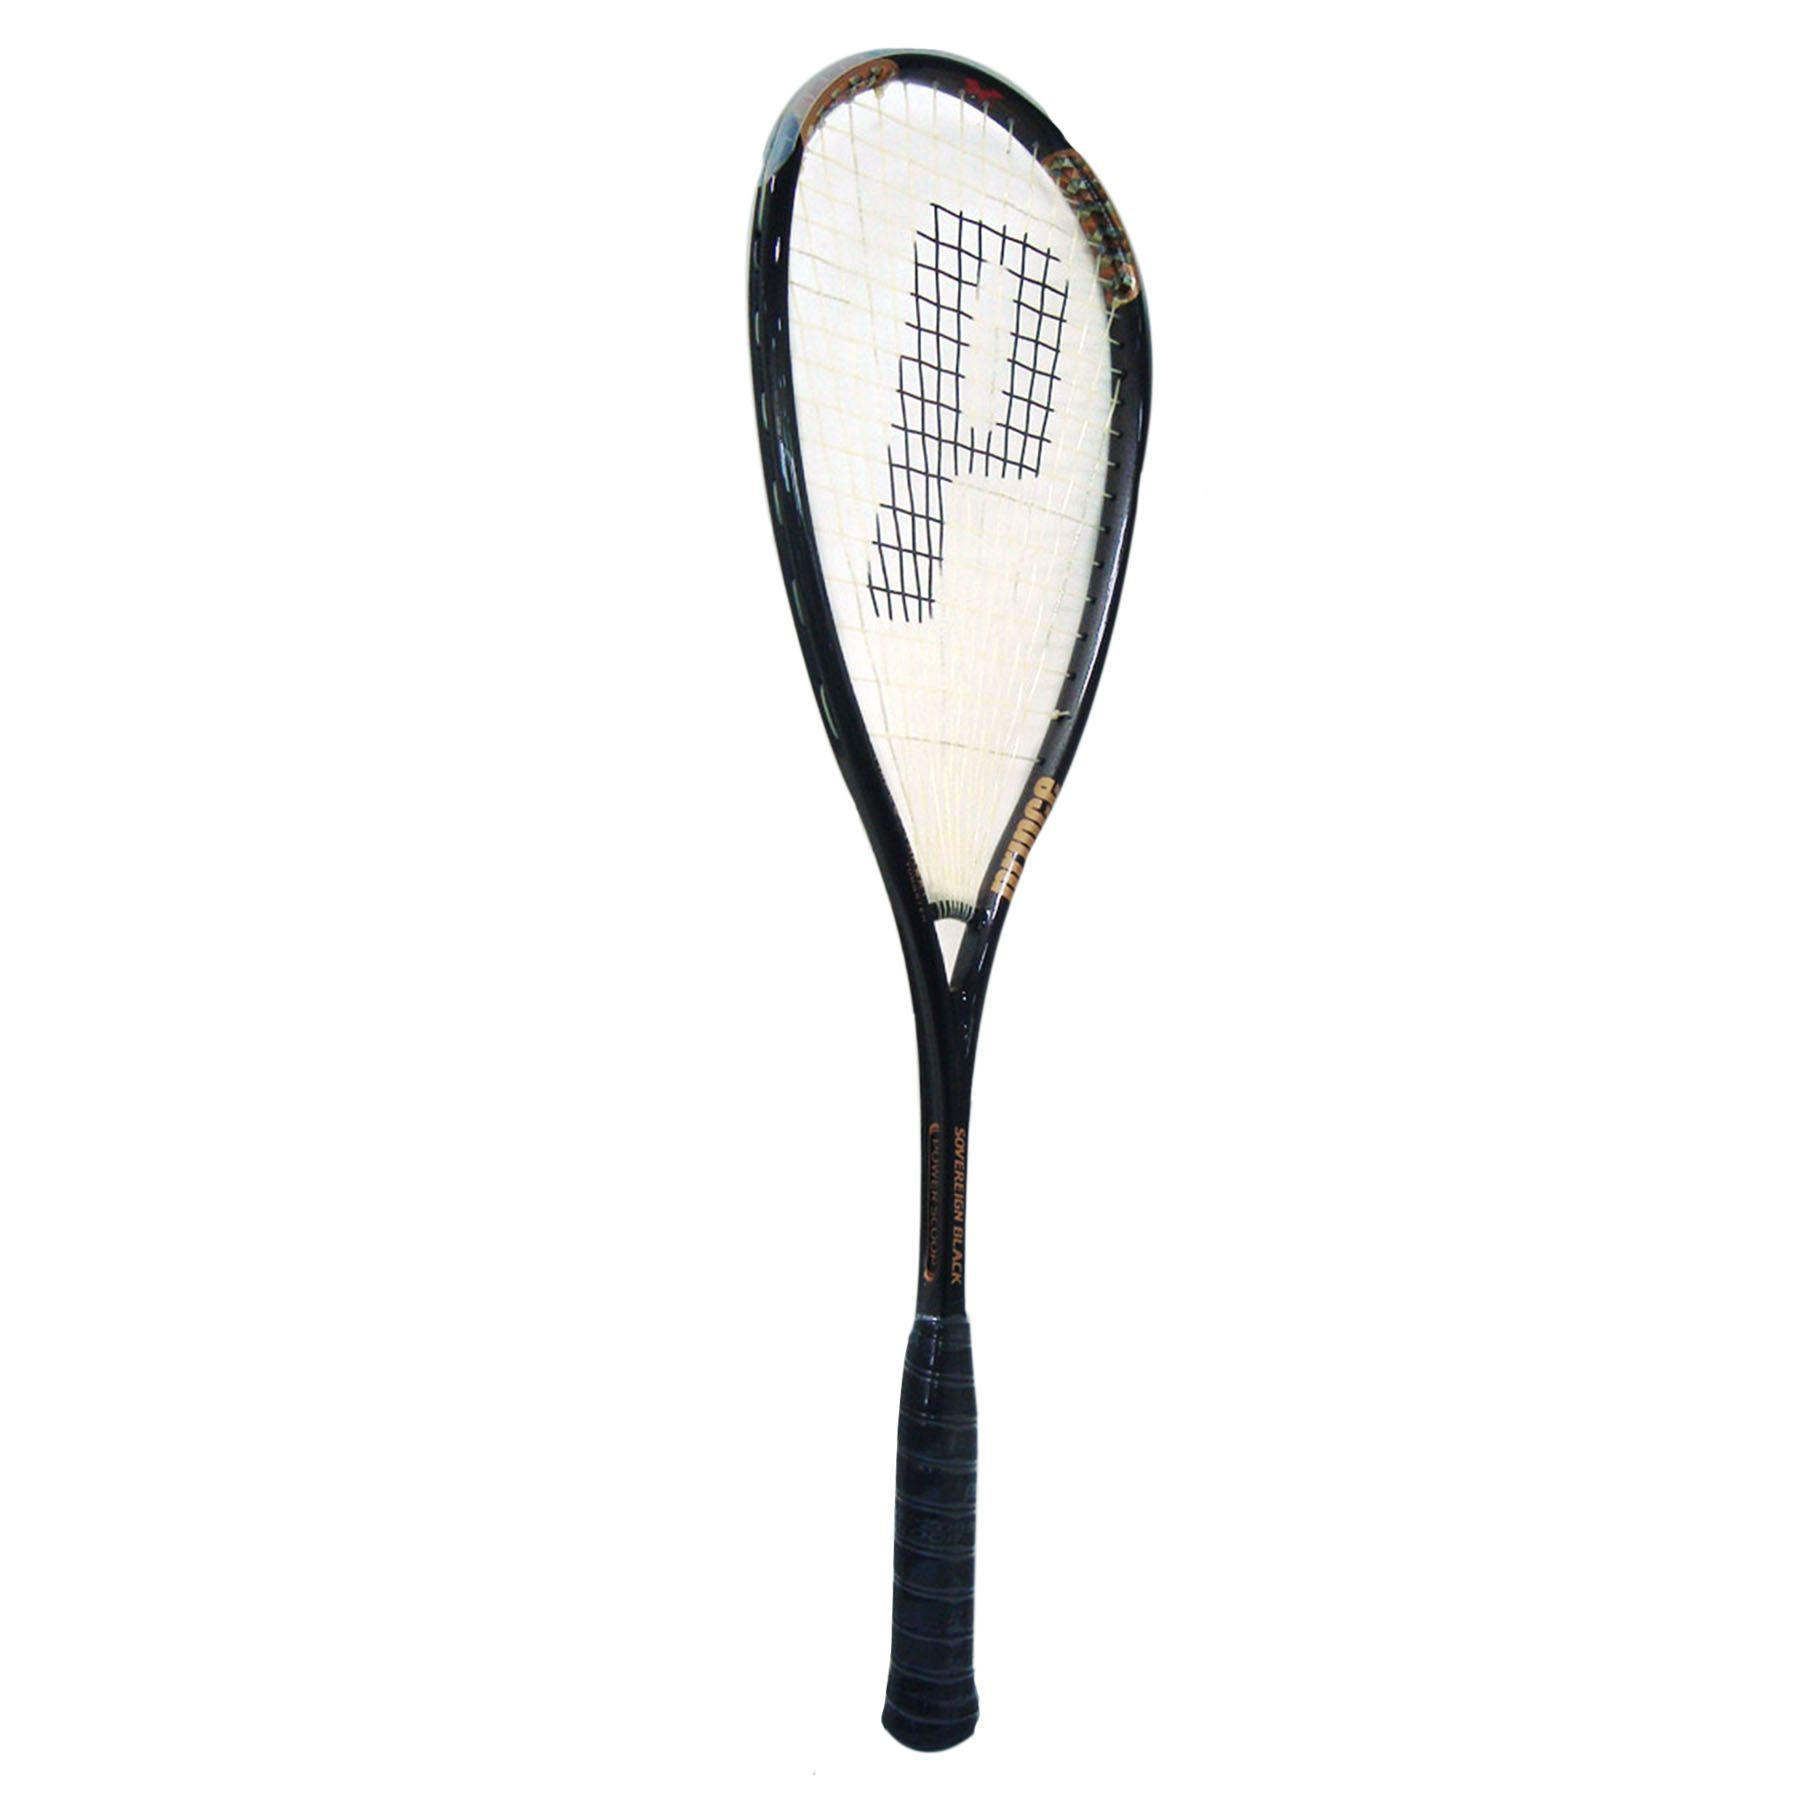 Prince TT Sovereign Black Squash Racket